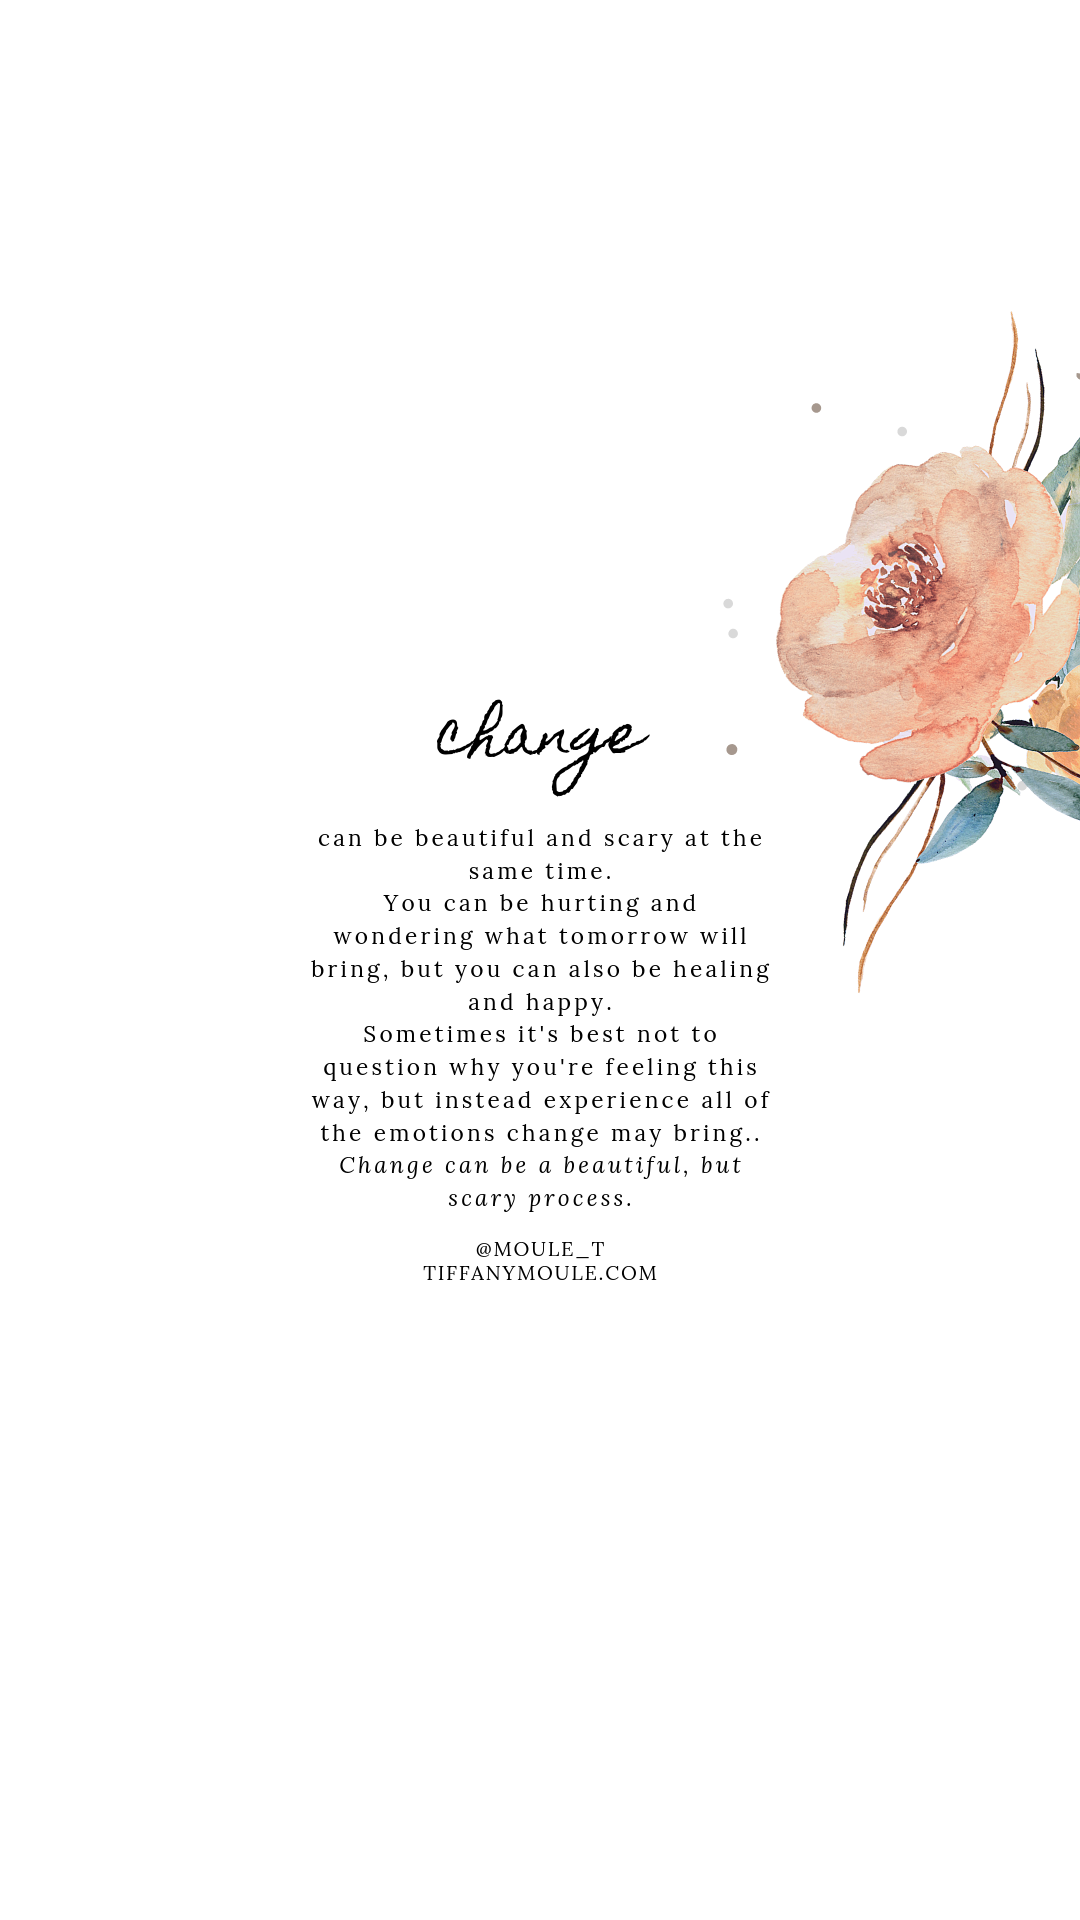 Change can be scary, but it can also be beautiful and full of growth and so much potential